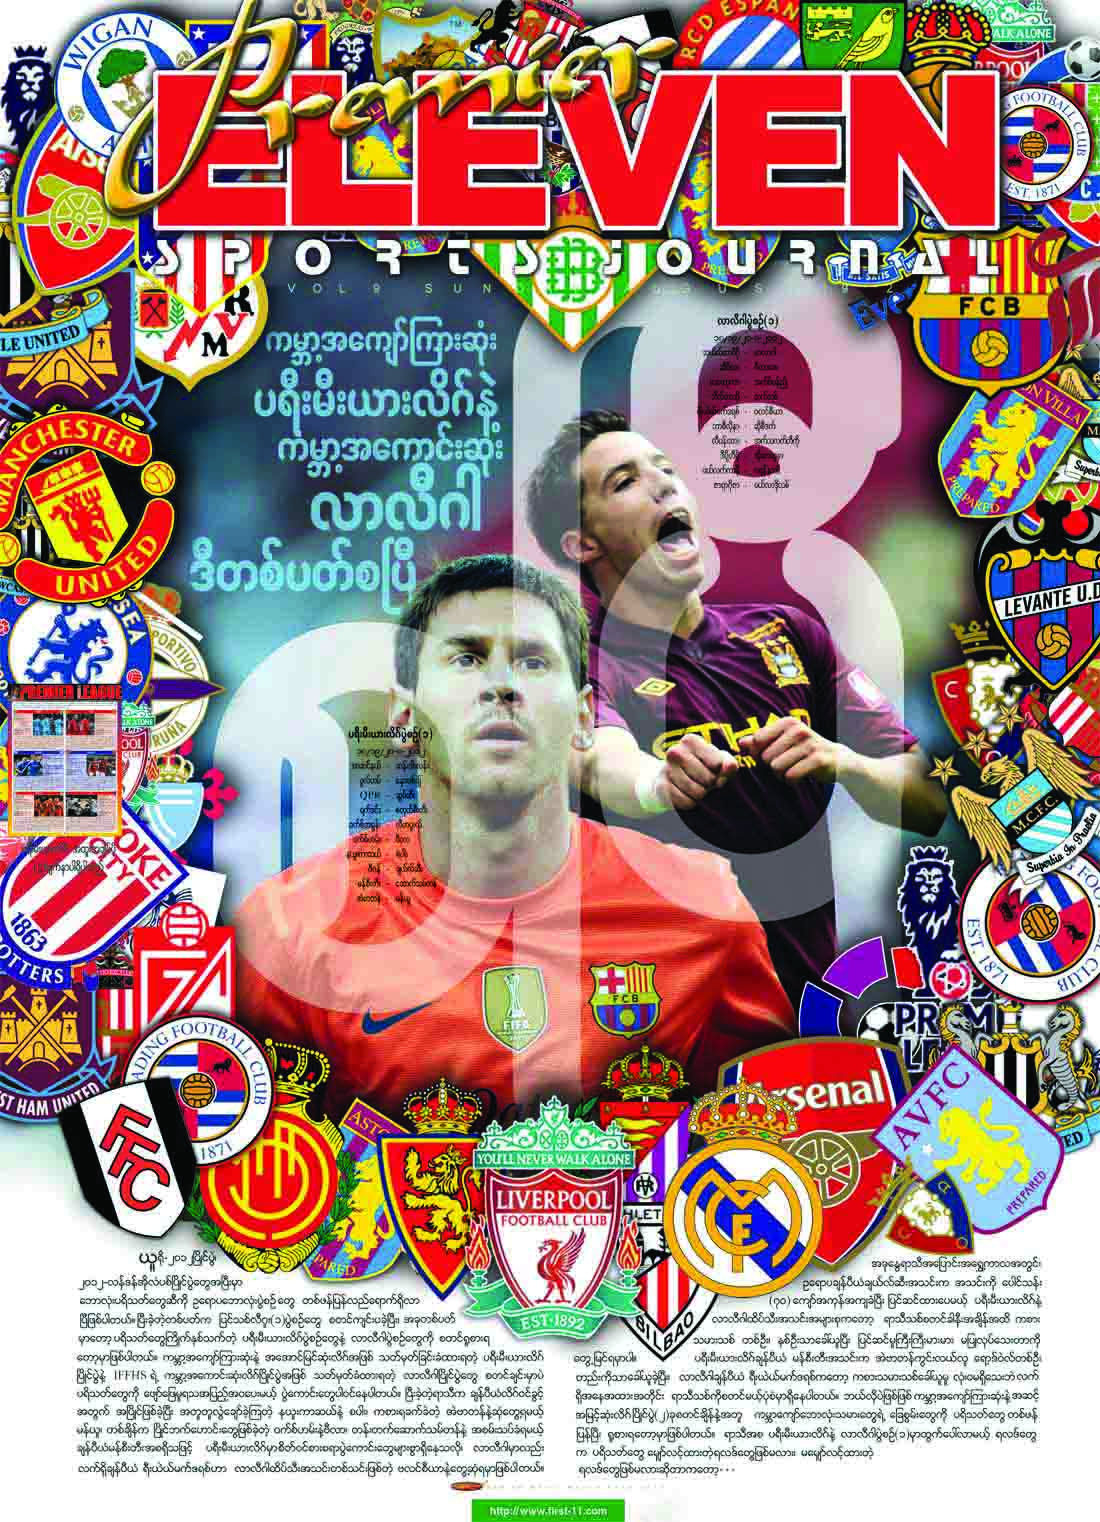 Eleven Sport Journal in Myanmar http://www.thithtoolwin.net/2012/08/premier-eleven-sports-journal-vol-9-no.html